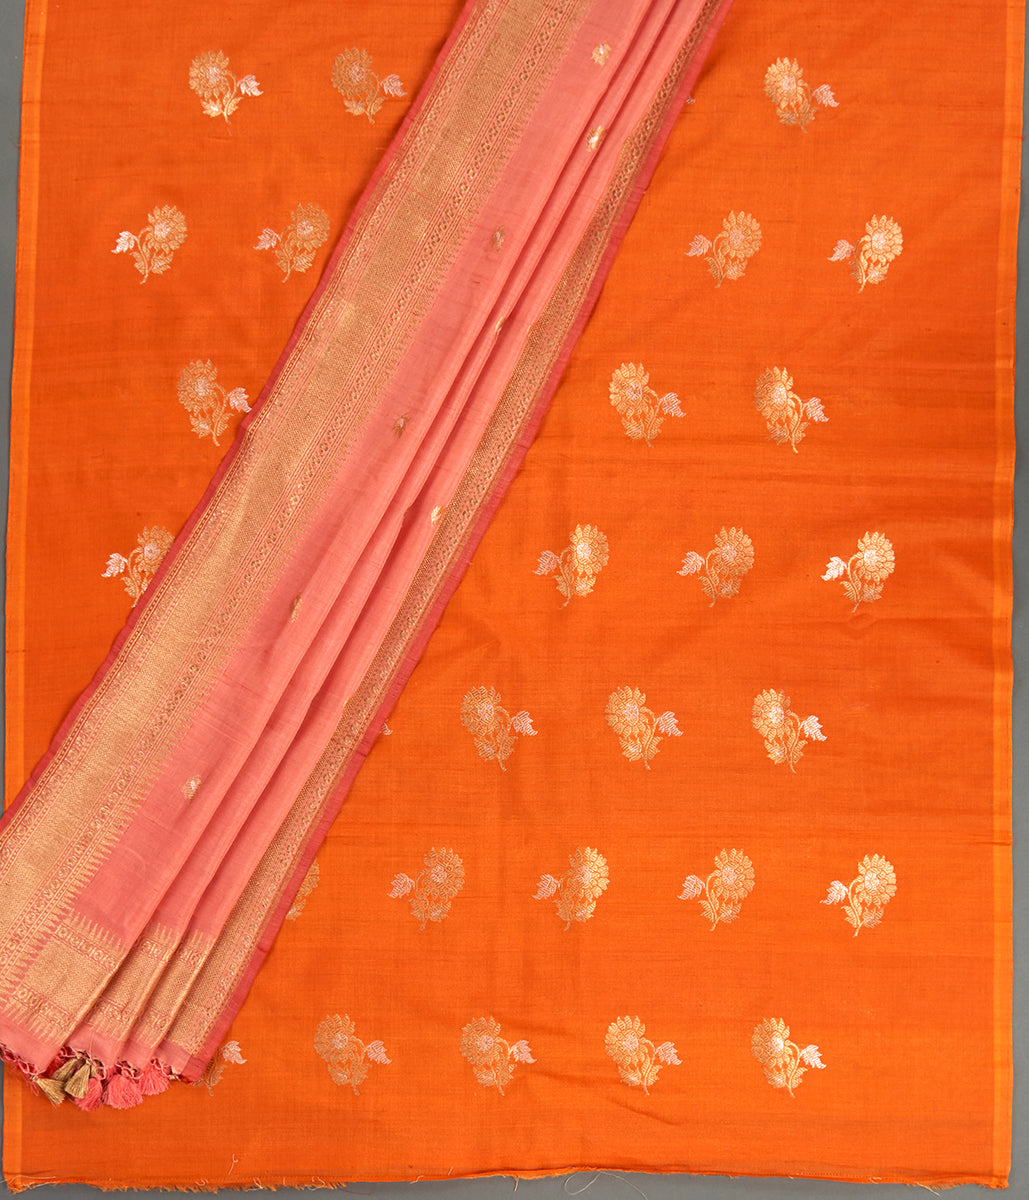 Suit Set - Handwoven Orange Tusser Kurta with Pink Dupatta